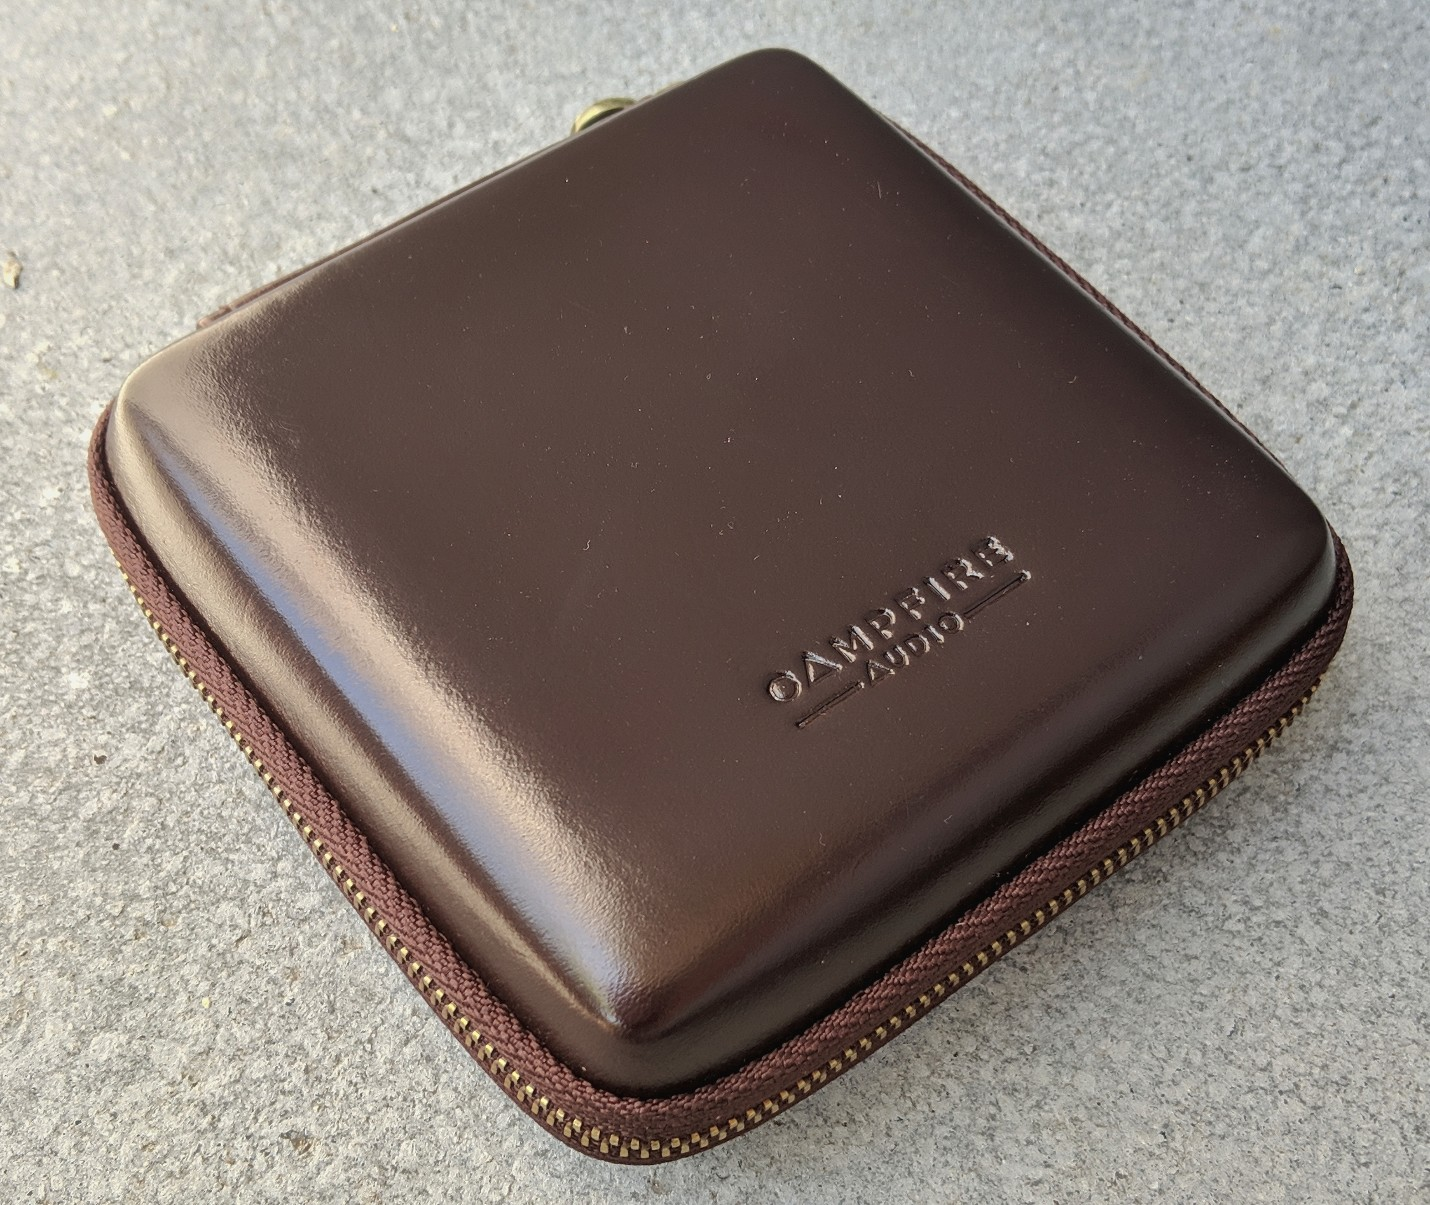 Campfire Audio Solaris leather carry case with brass zipper.